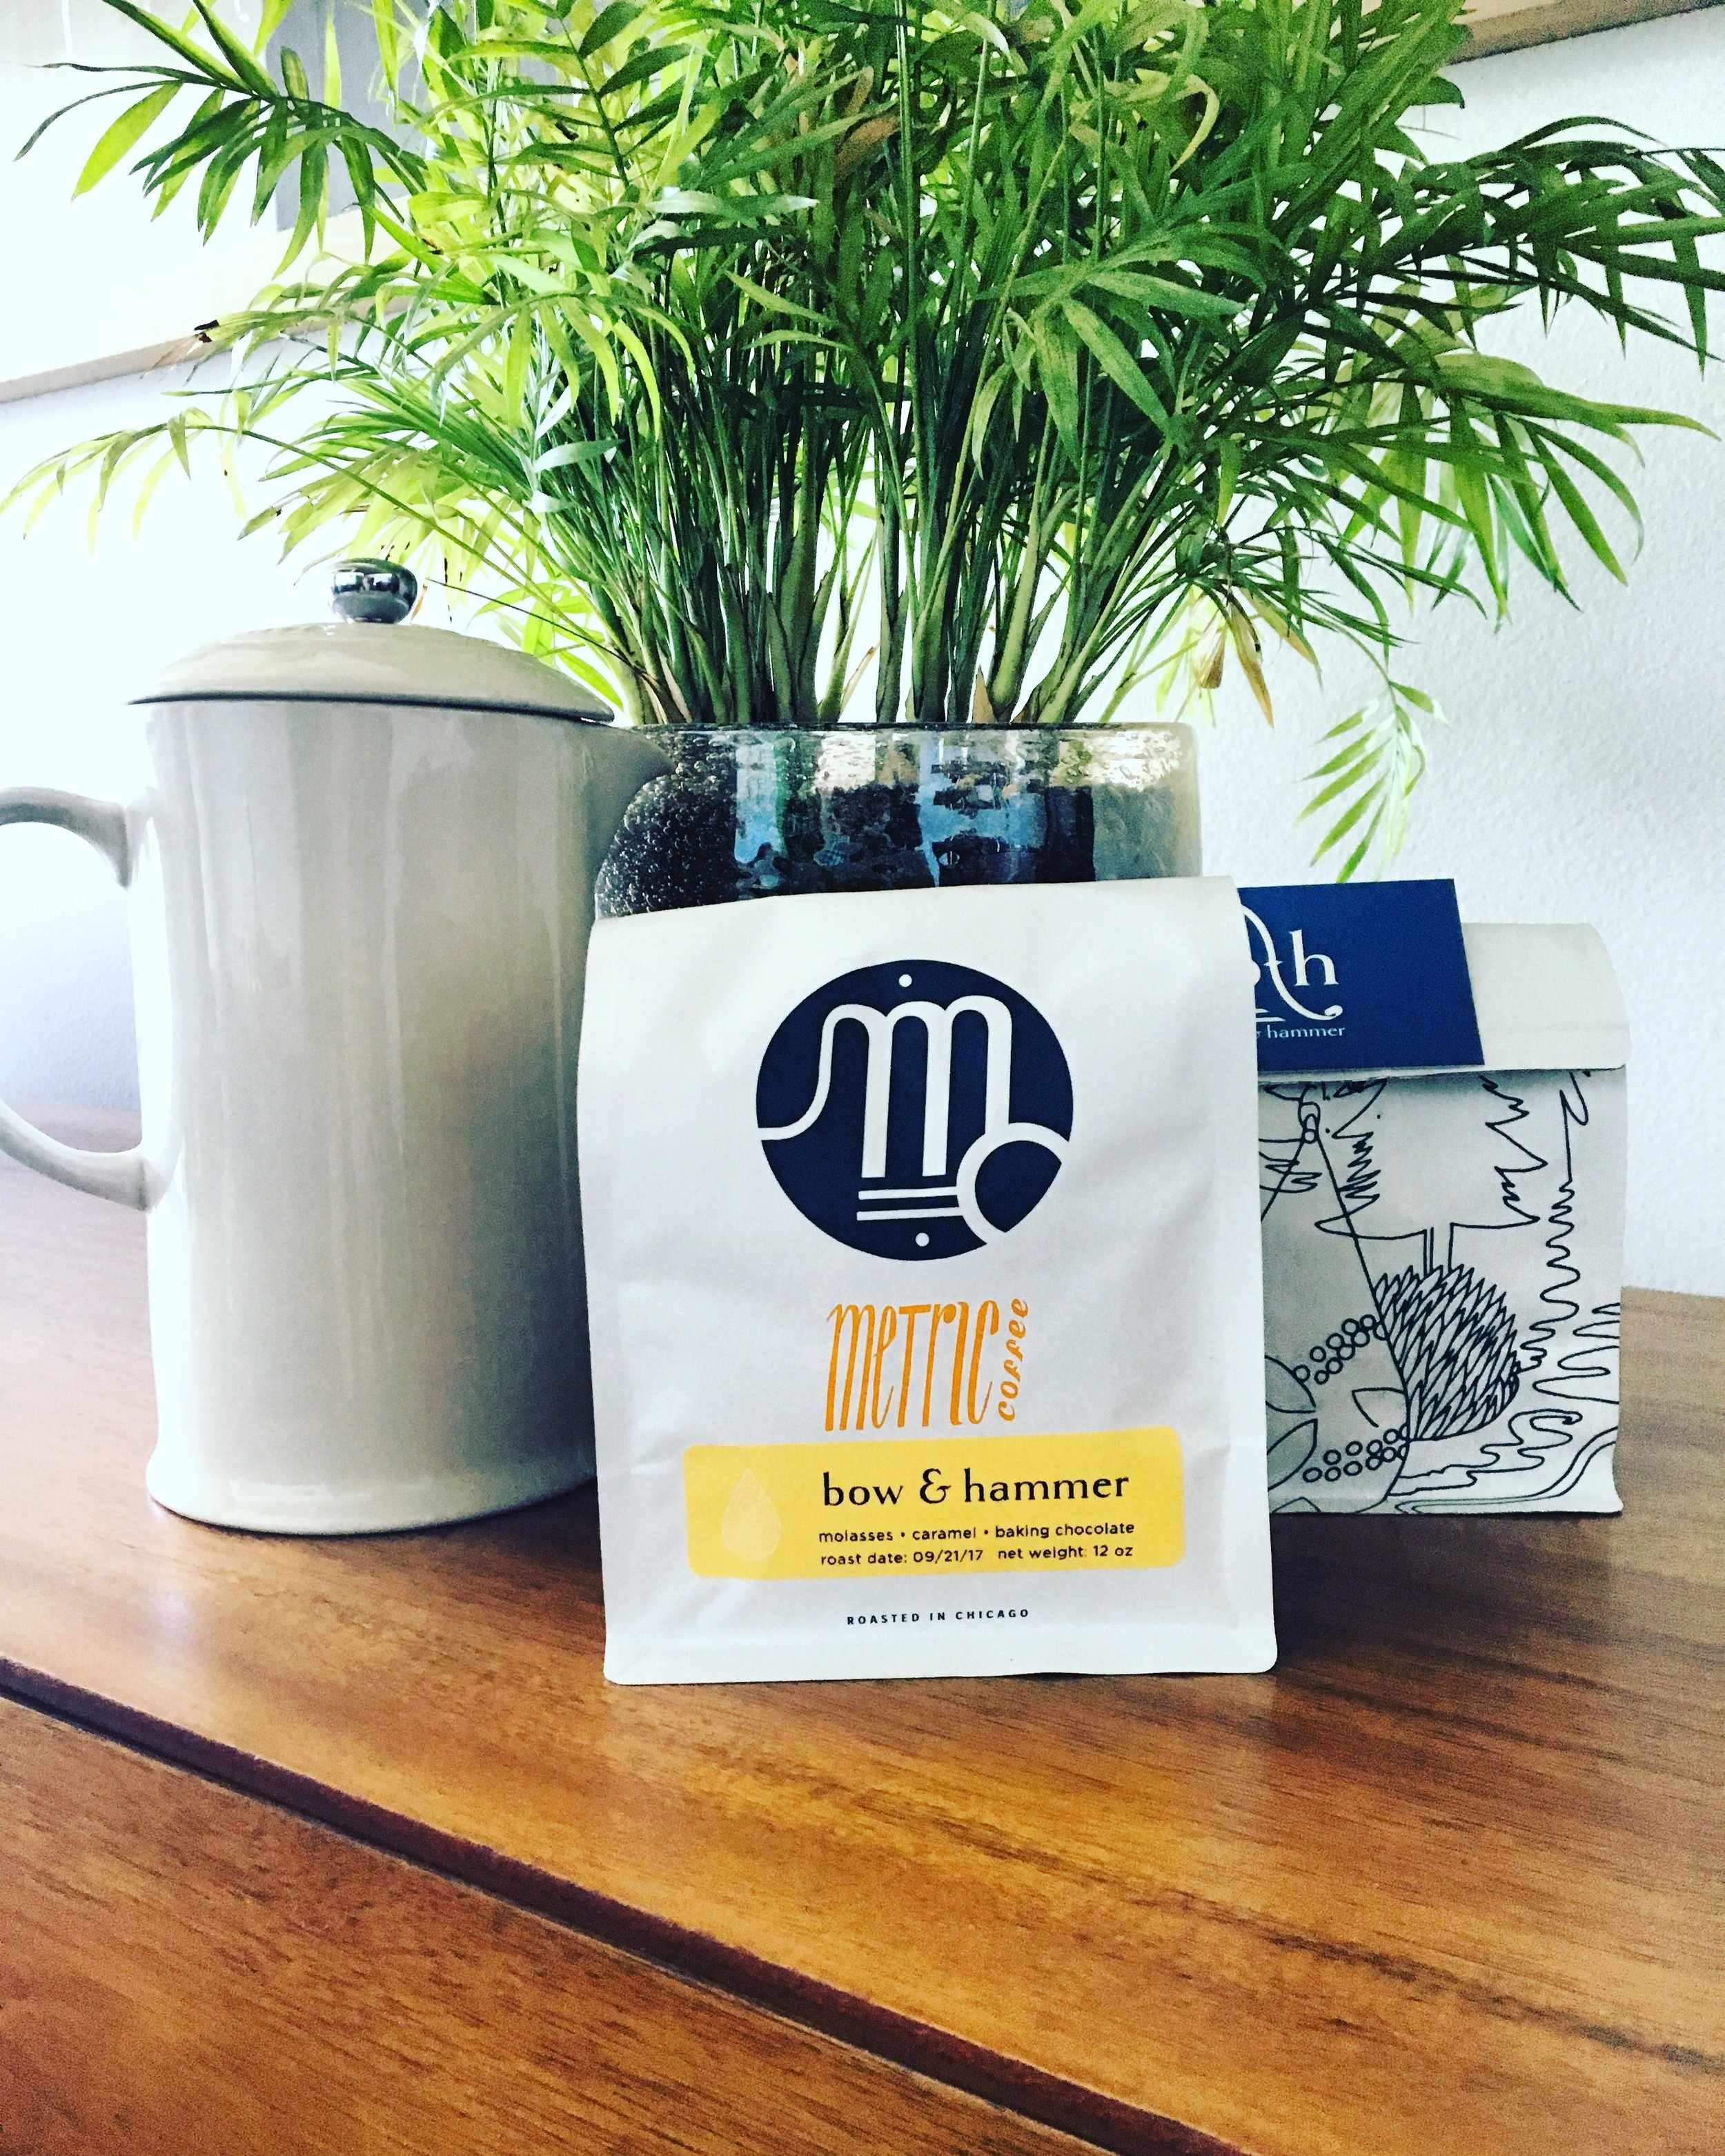 B&H's very own blend of coffee is now available for purchase! Carefully roasted by Metric Coffee Roasters, this will surely be a morning favorite!